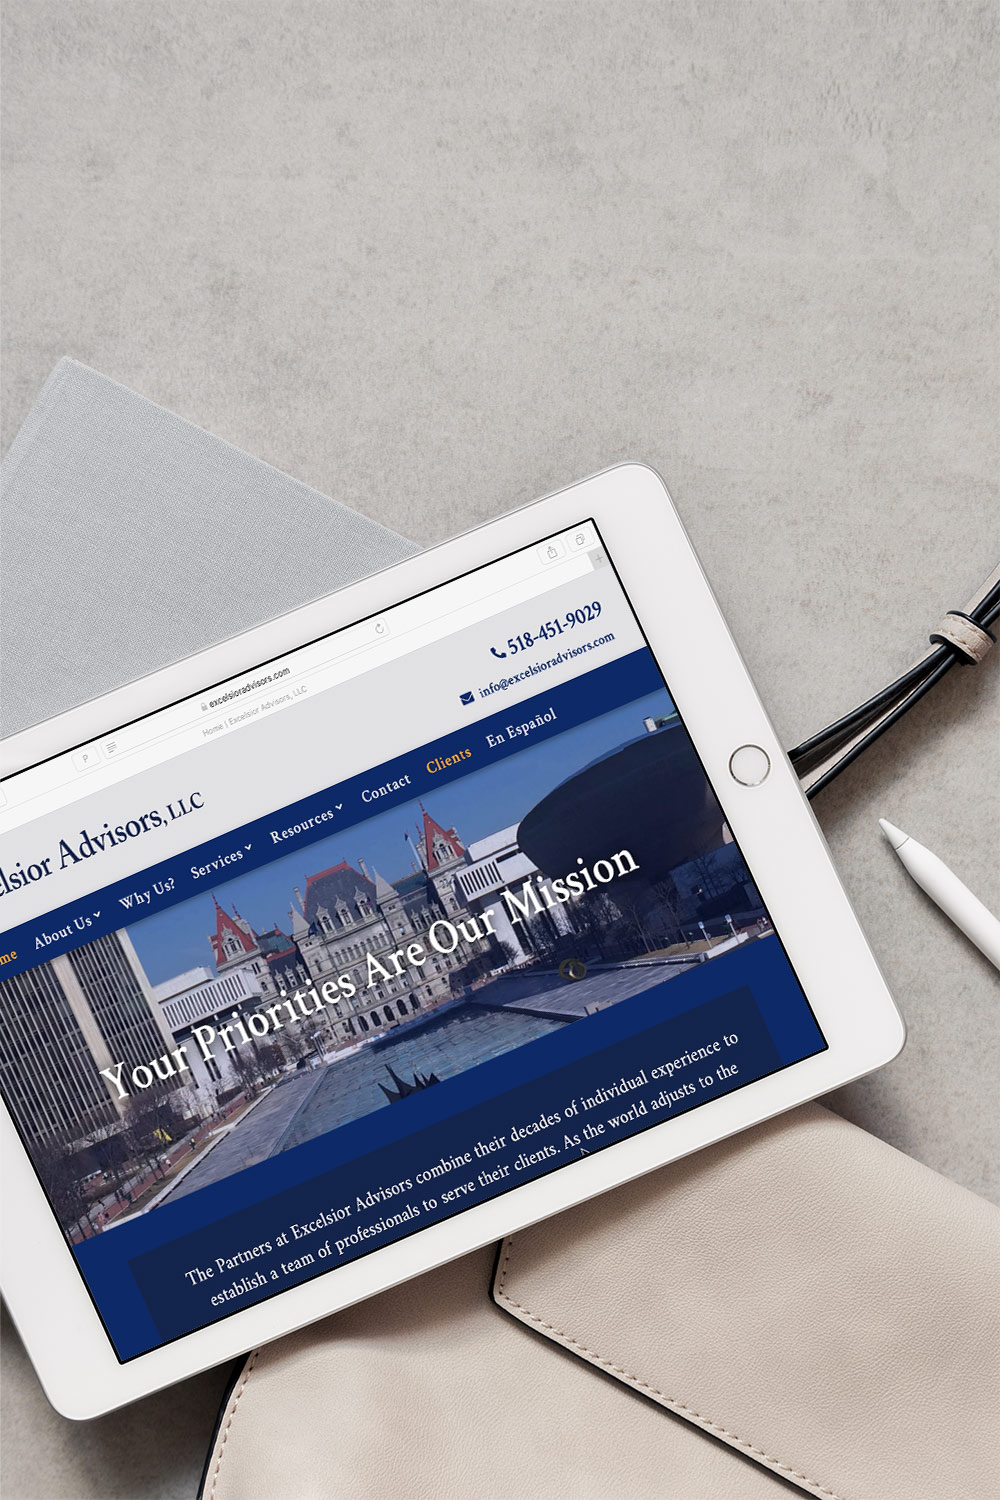 Excelsior Advisors Attorney New Website with blue on iPad